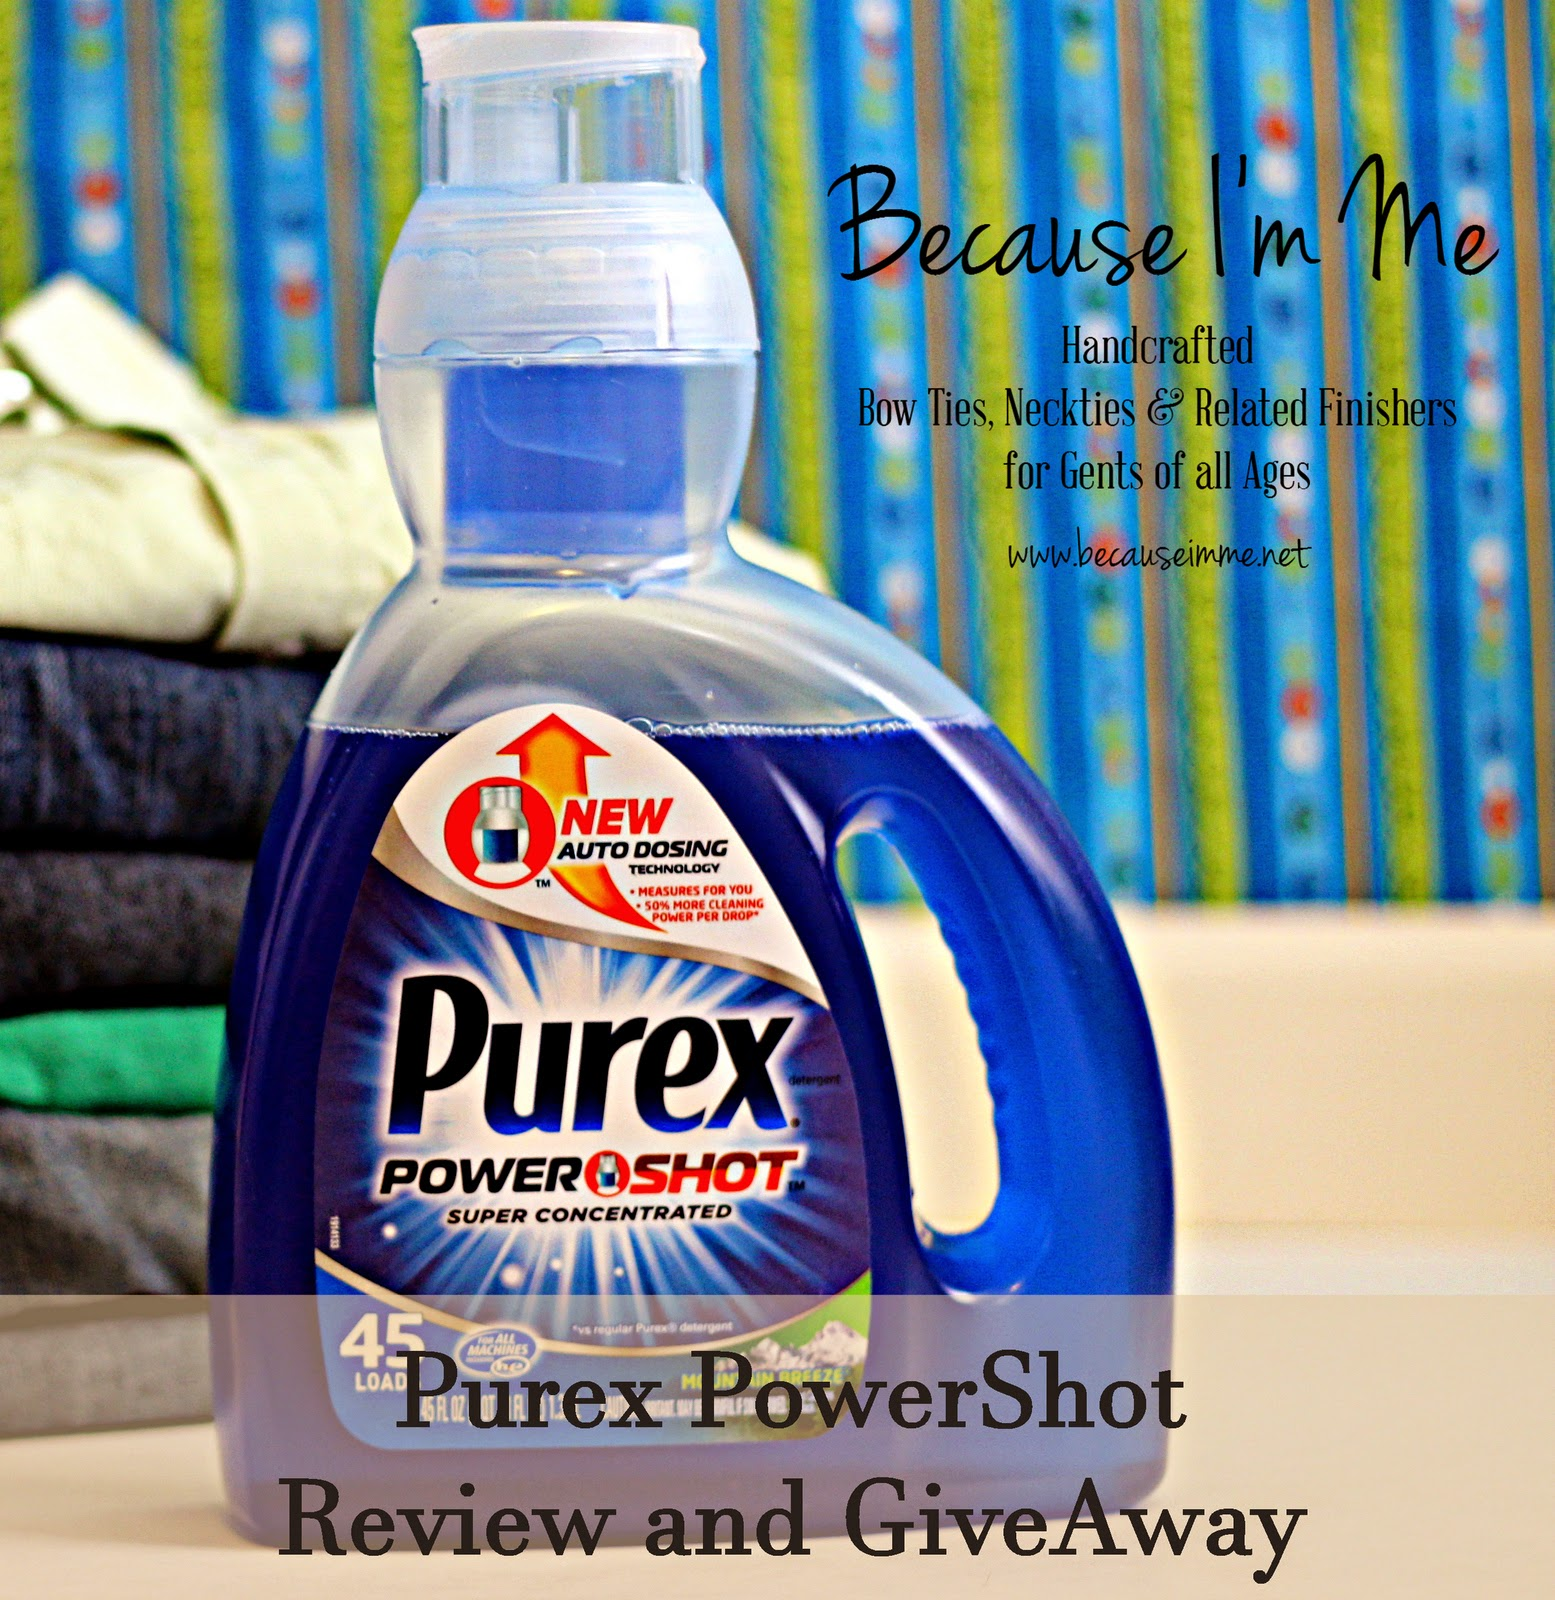 Because I'm Me Purex PureShot Liquid Laundry Detergent Review and Giveaway